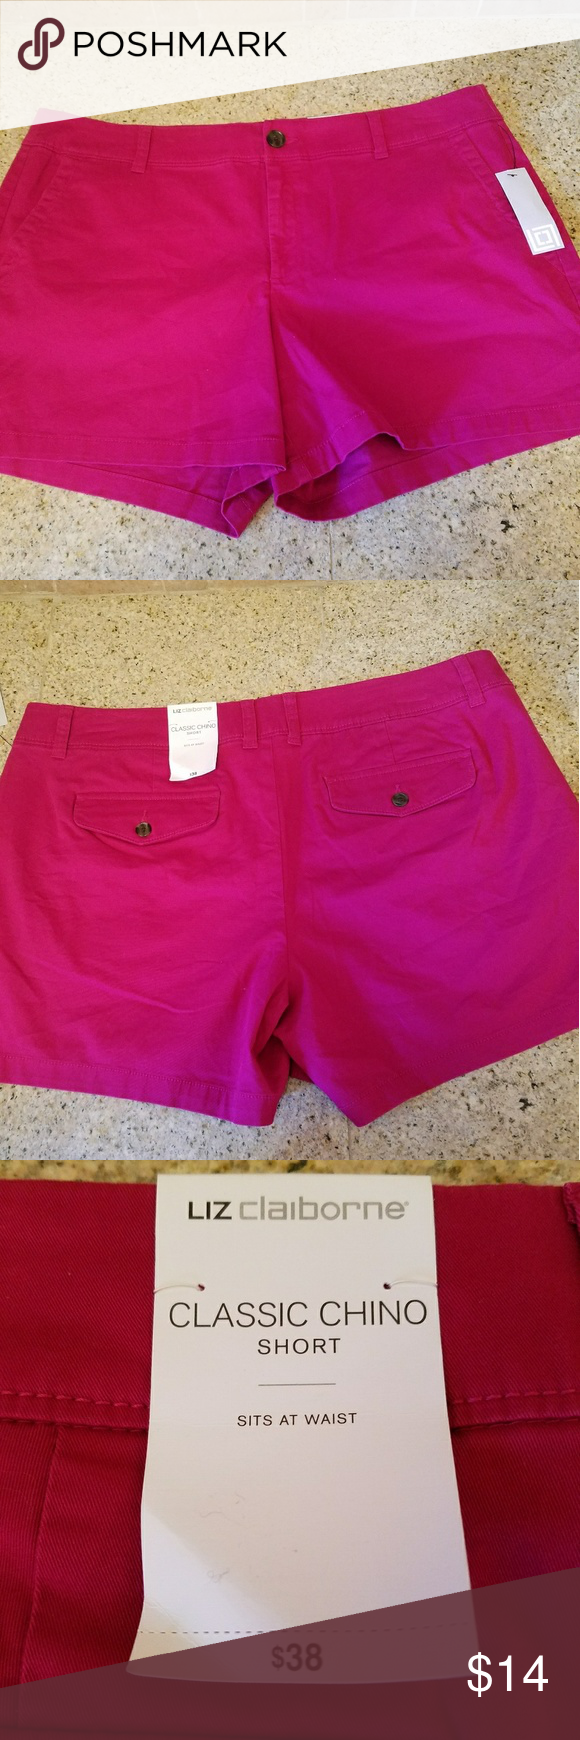 Liz Claiborne hot pink shorts GORGEOUS hot pink! A must-have for the summer wardrobe! Liz Claiborne Shorts